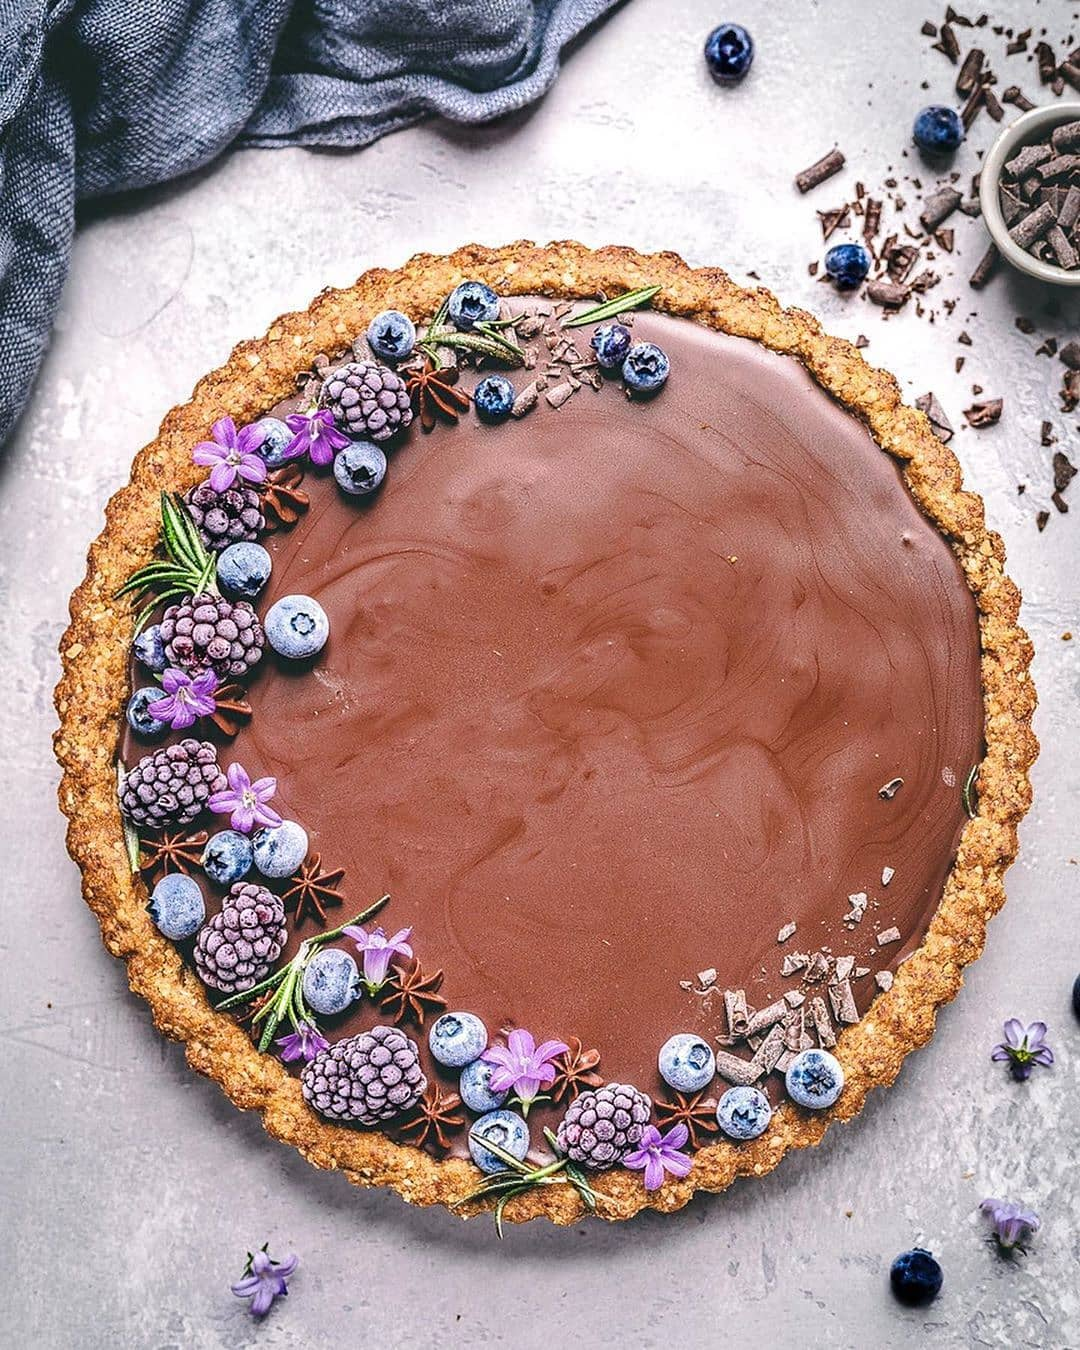 gluten free blueberry and chocolate tart by sculptedkitchen display image  c948eb1e